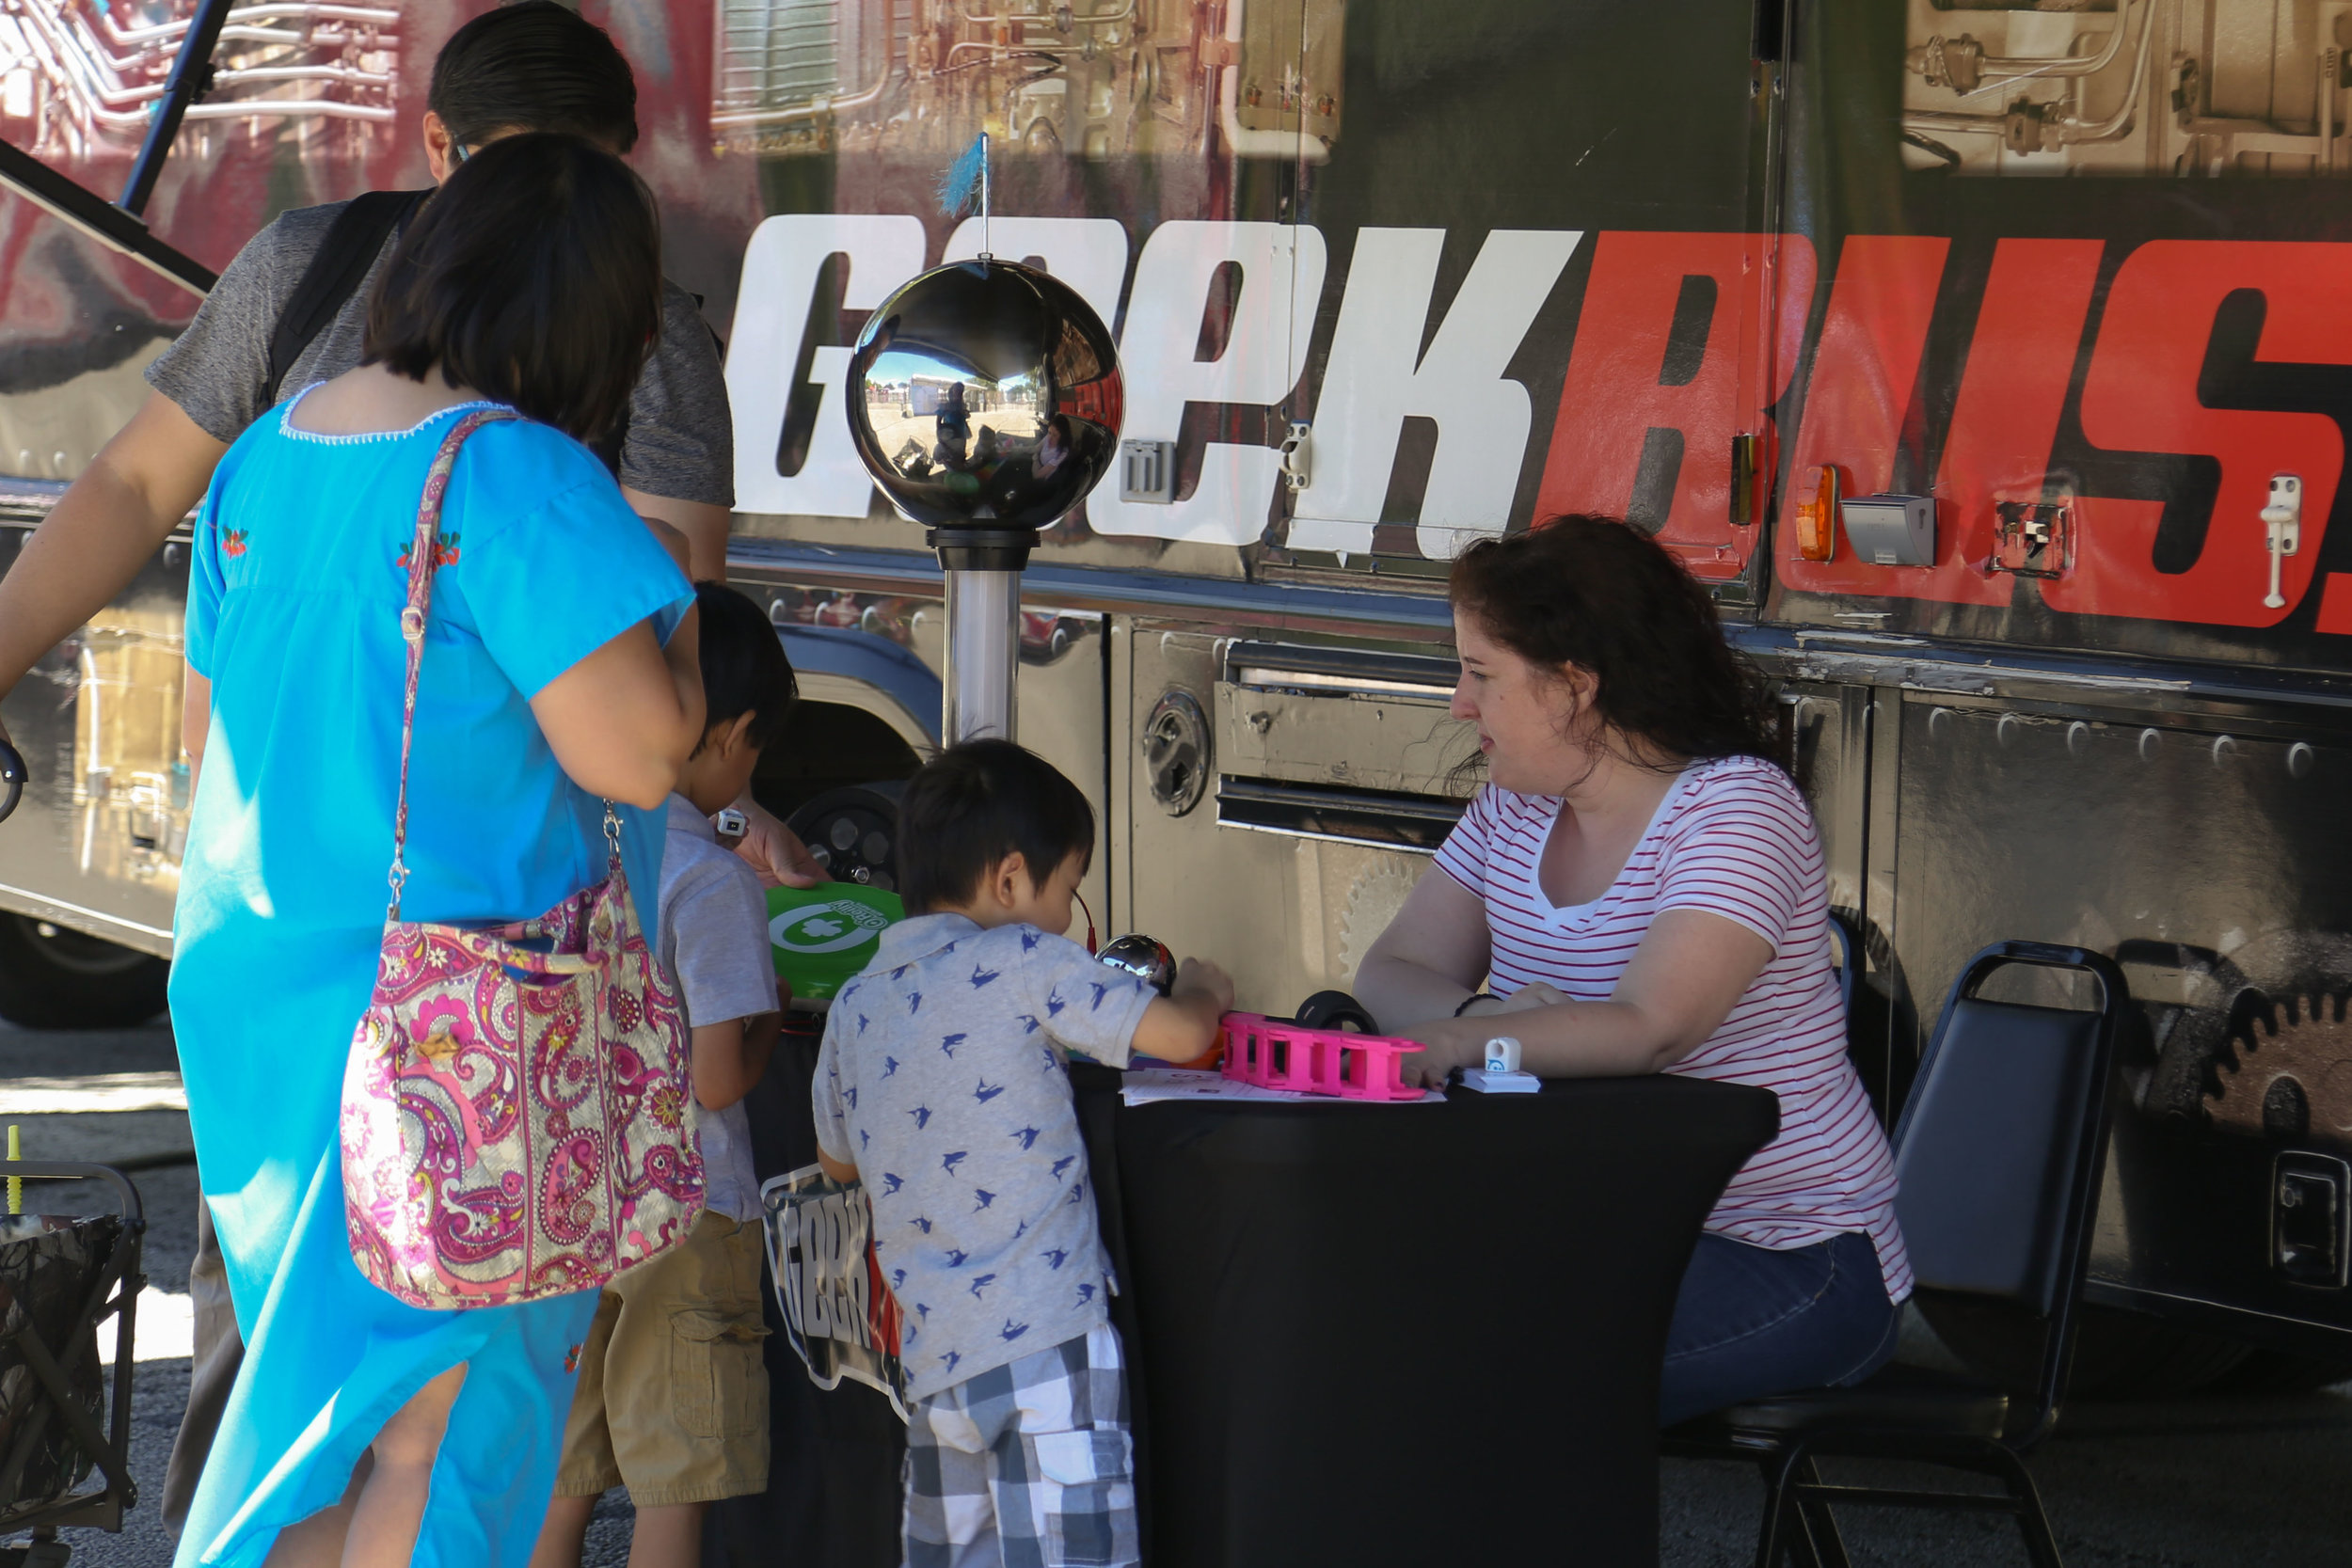 Jennifer Ireland teaches children about tech at the Geekbus. (Photo by:  Jonathan Guajardo  - Editor, SA Sentinel)